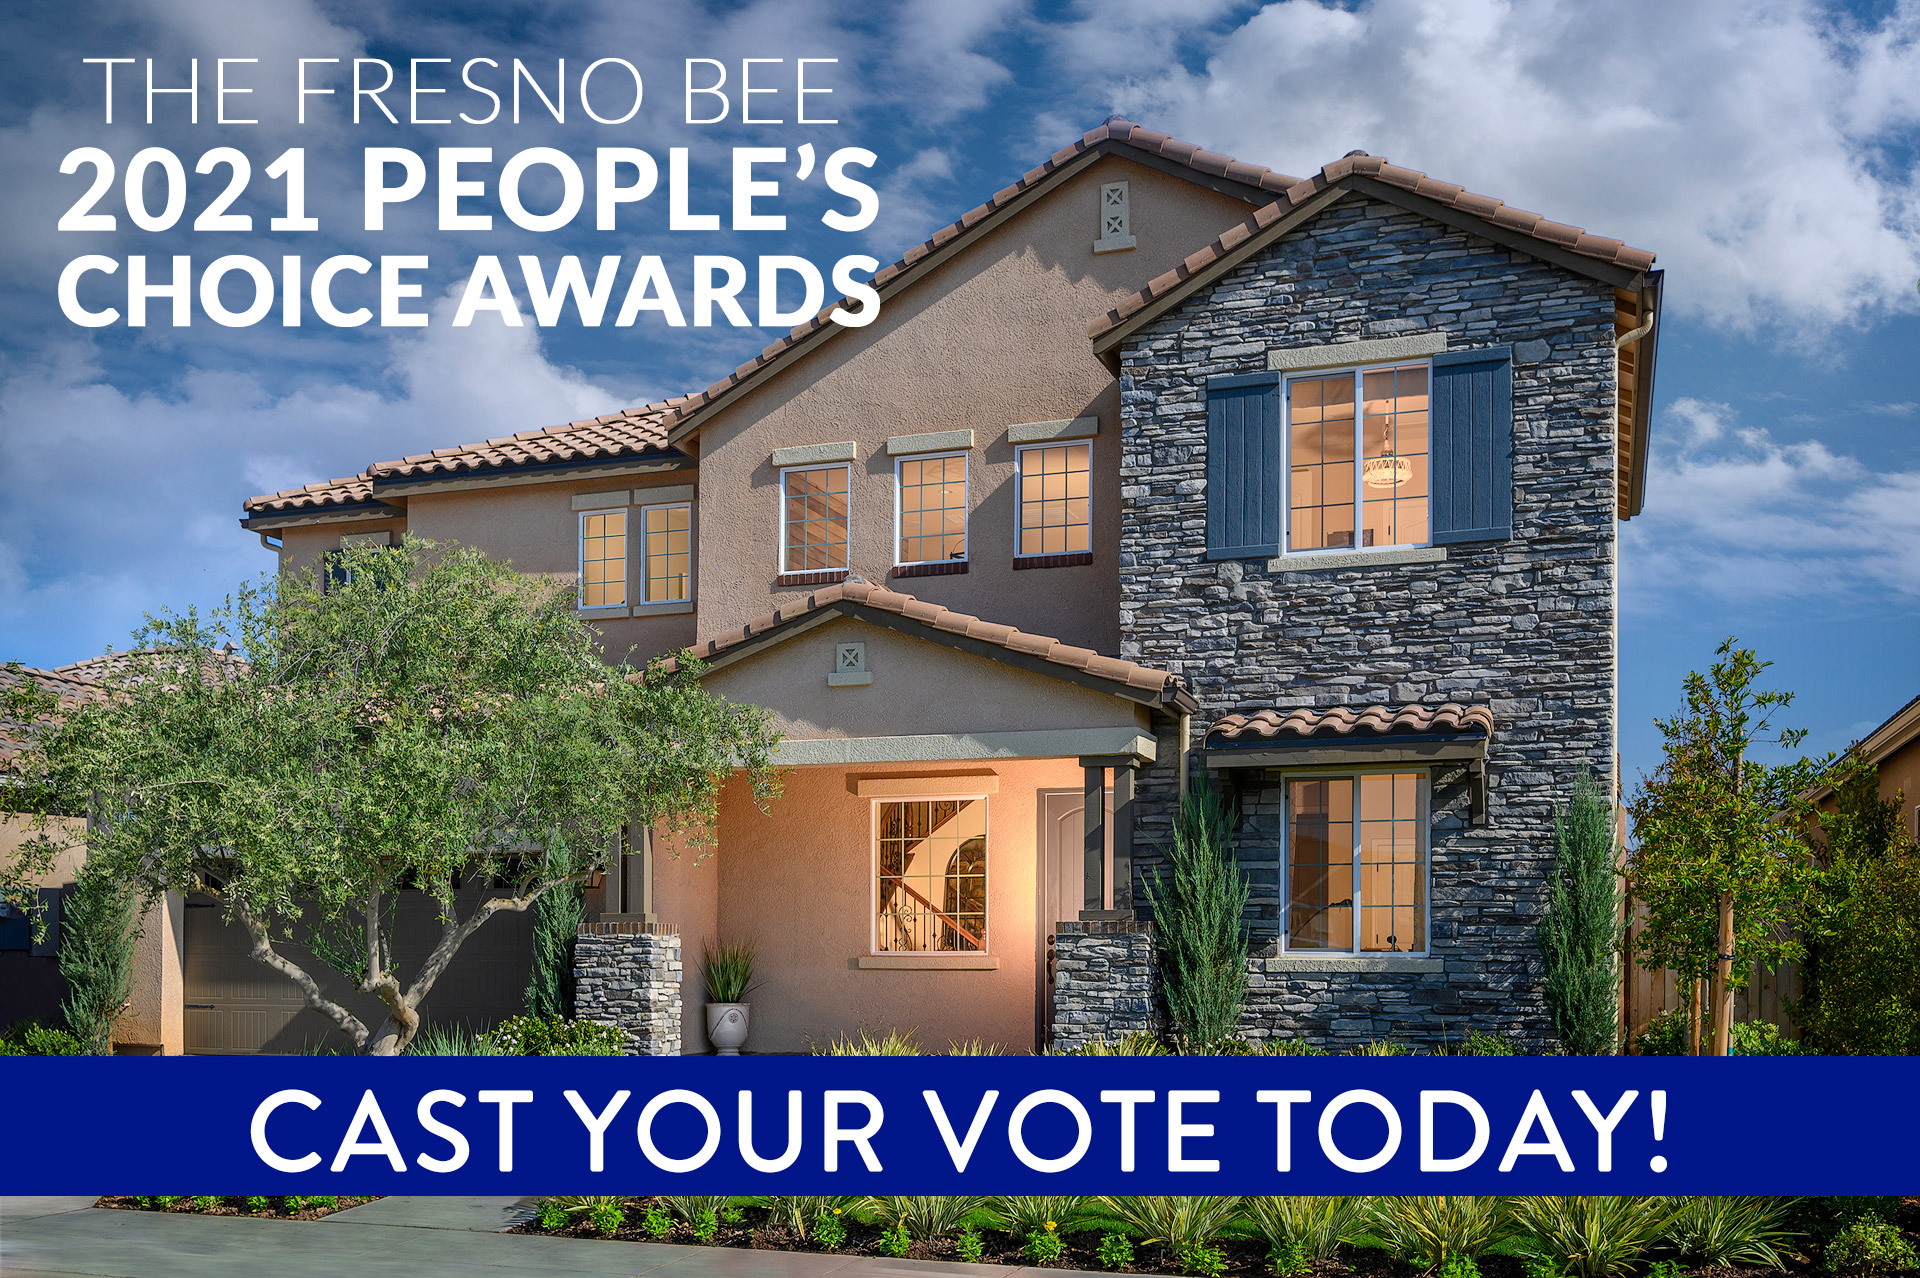 De Young Properties Would Appreciate Your Vote as The Fresno Bee People's Choice Best New Home Builder!